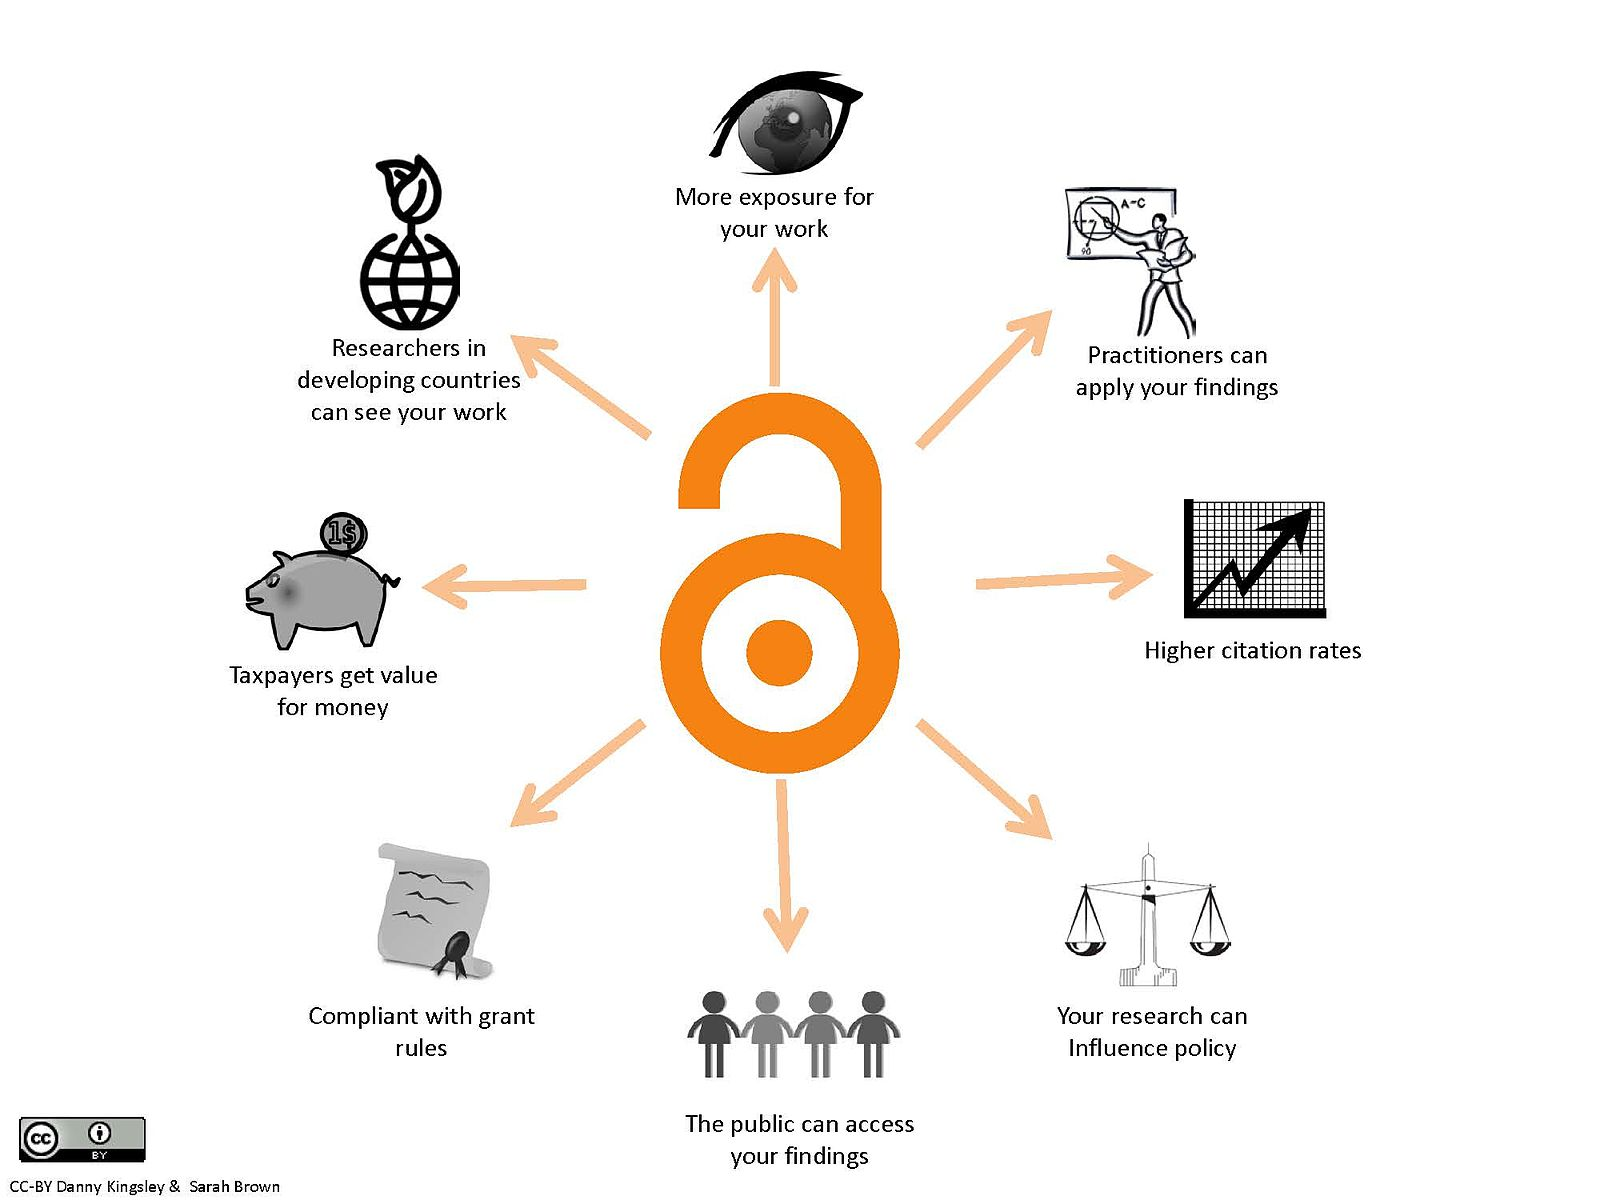 benefitsofopenaccess_cc-by_logo.pd_eng